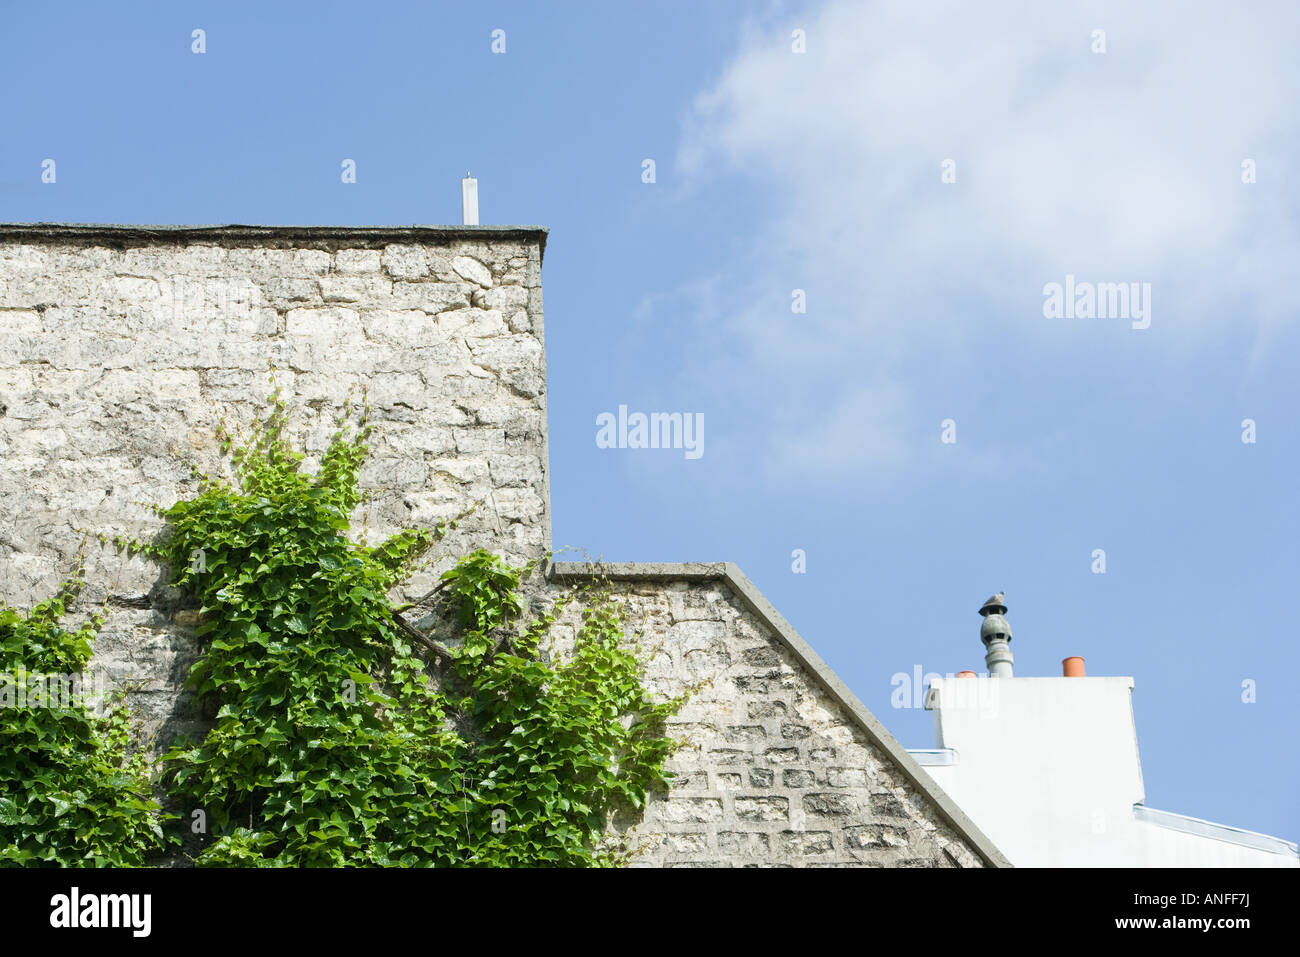 Vine growing on side of building - Stock Image